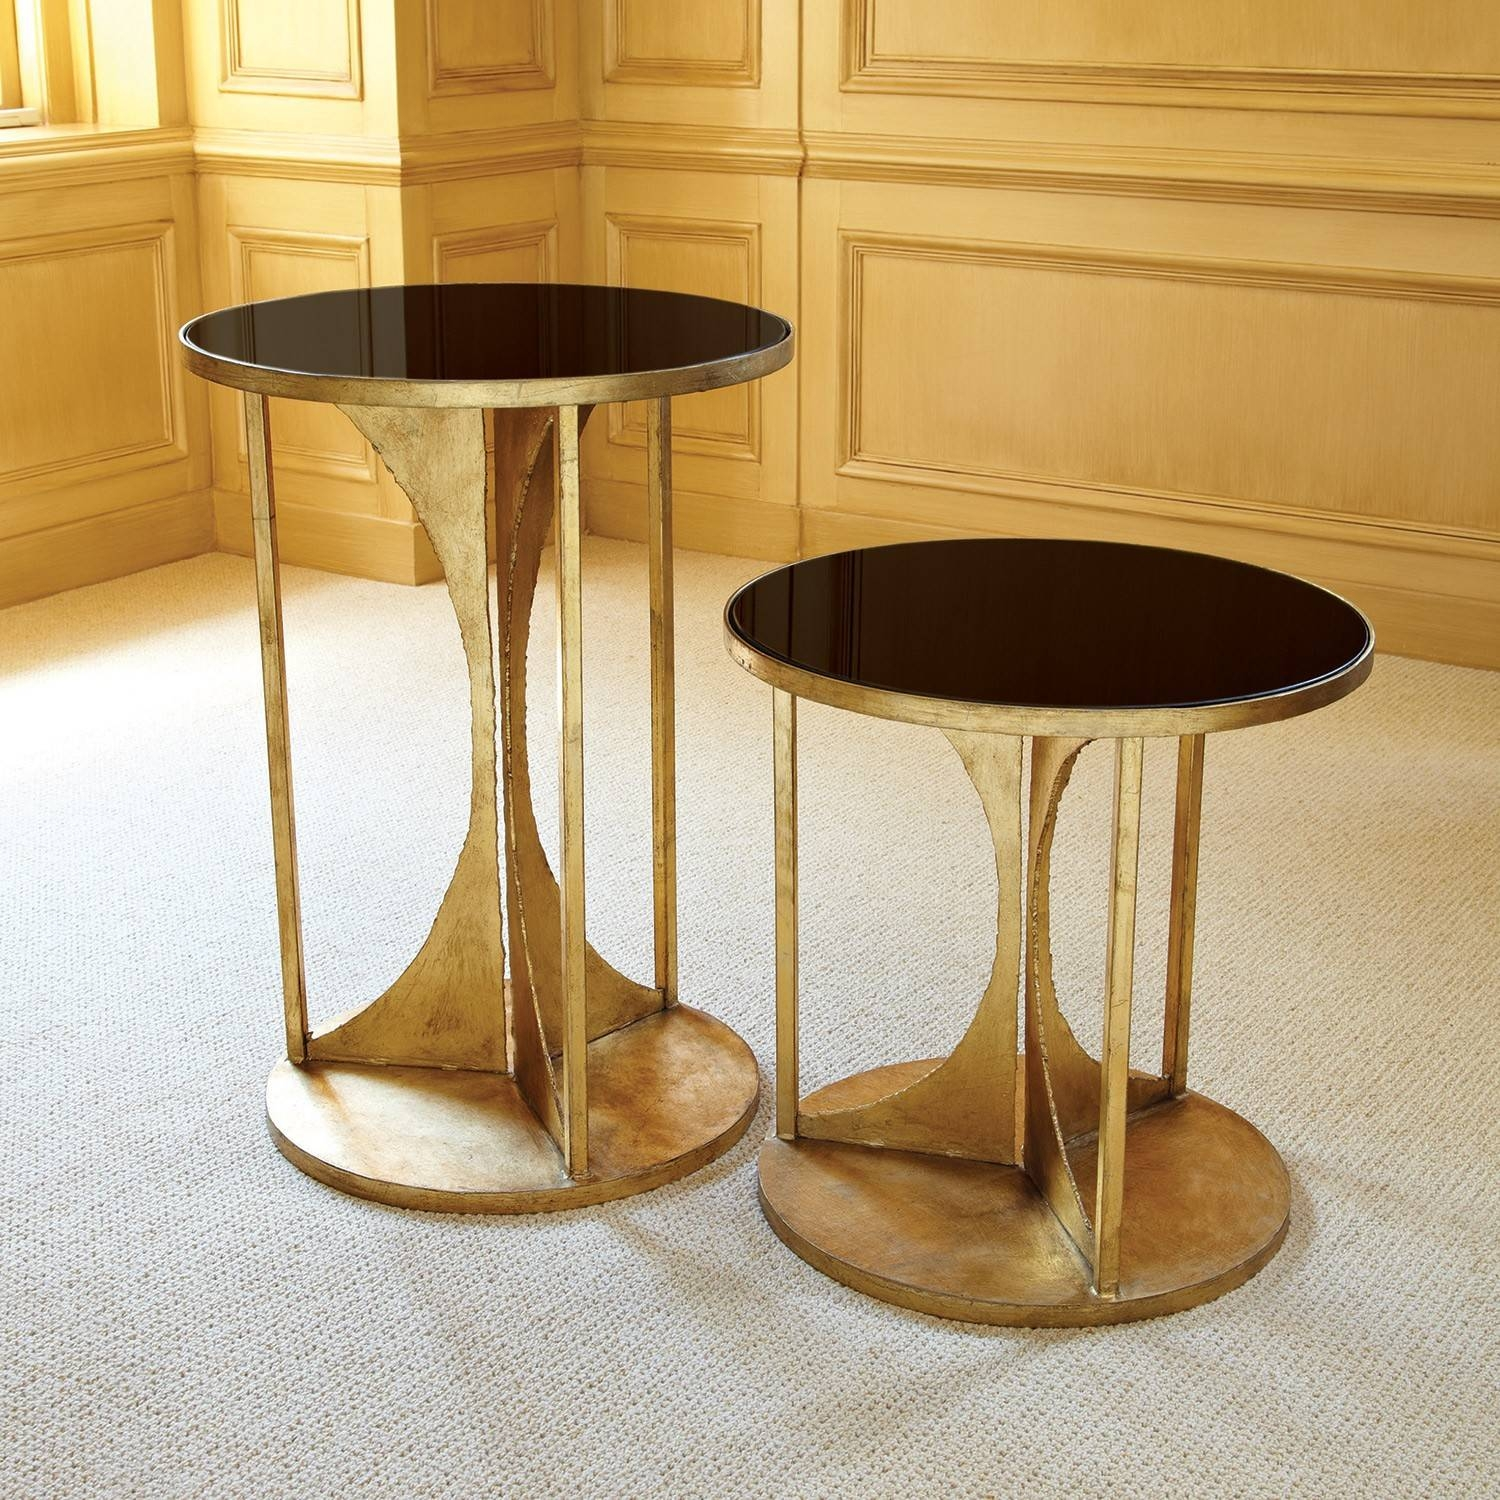 Appealing Interior Home Furniture Design Inspiration Display in Retro Glass Coffee Tables (Image 6 of 30)